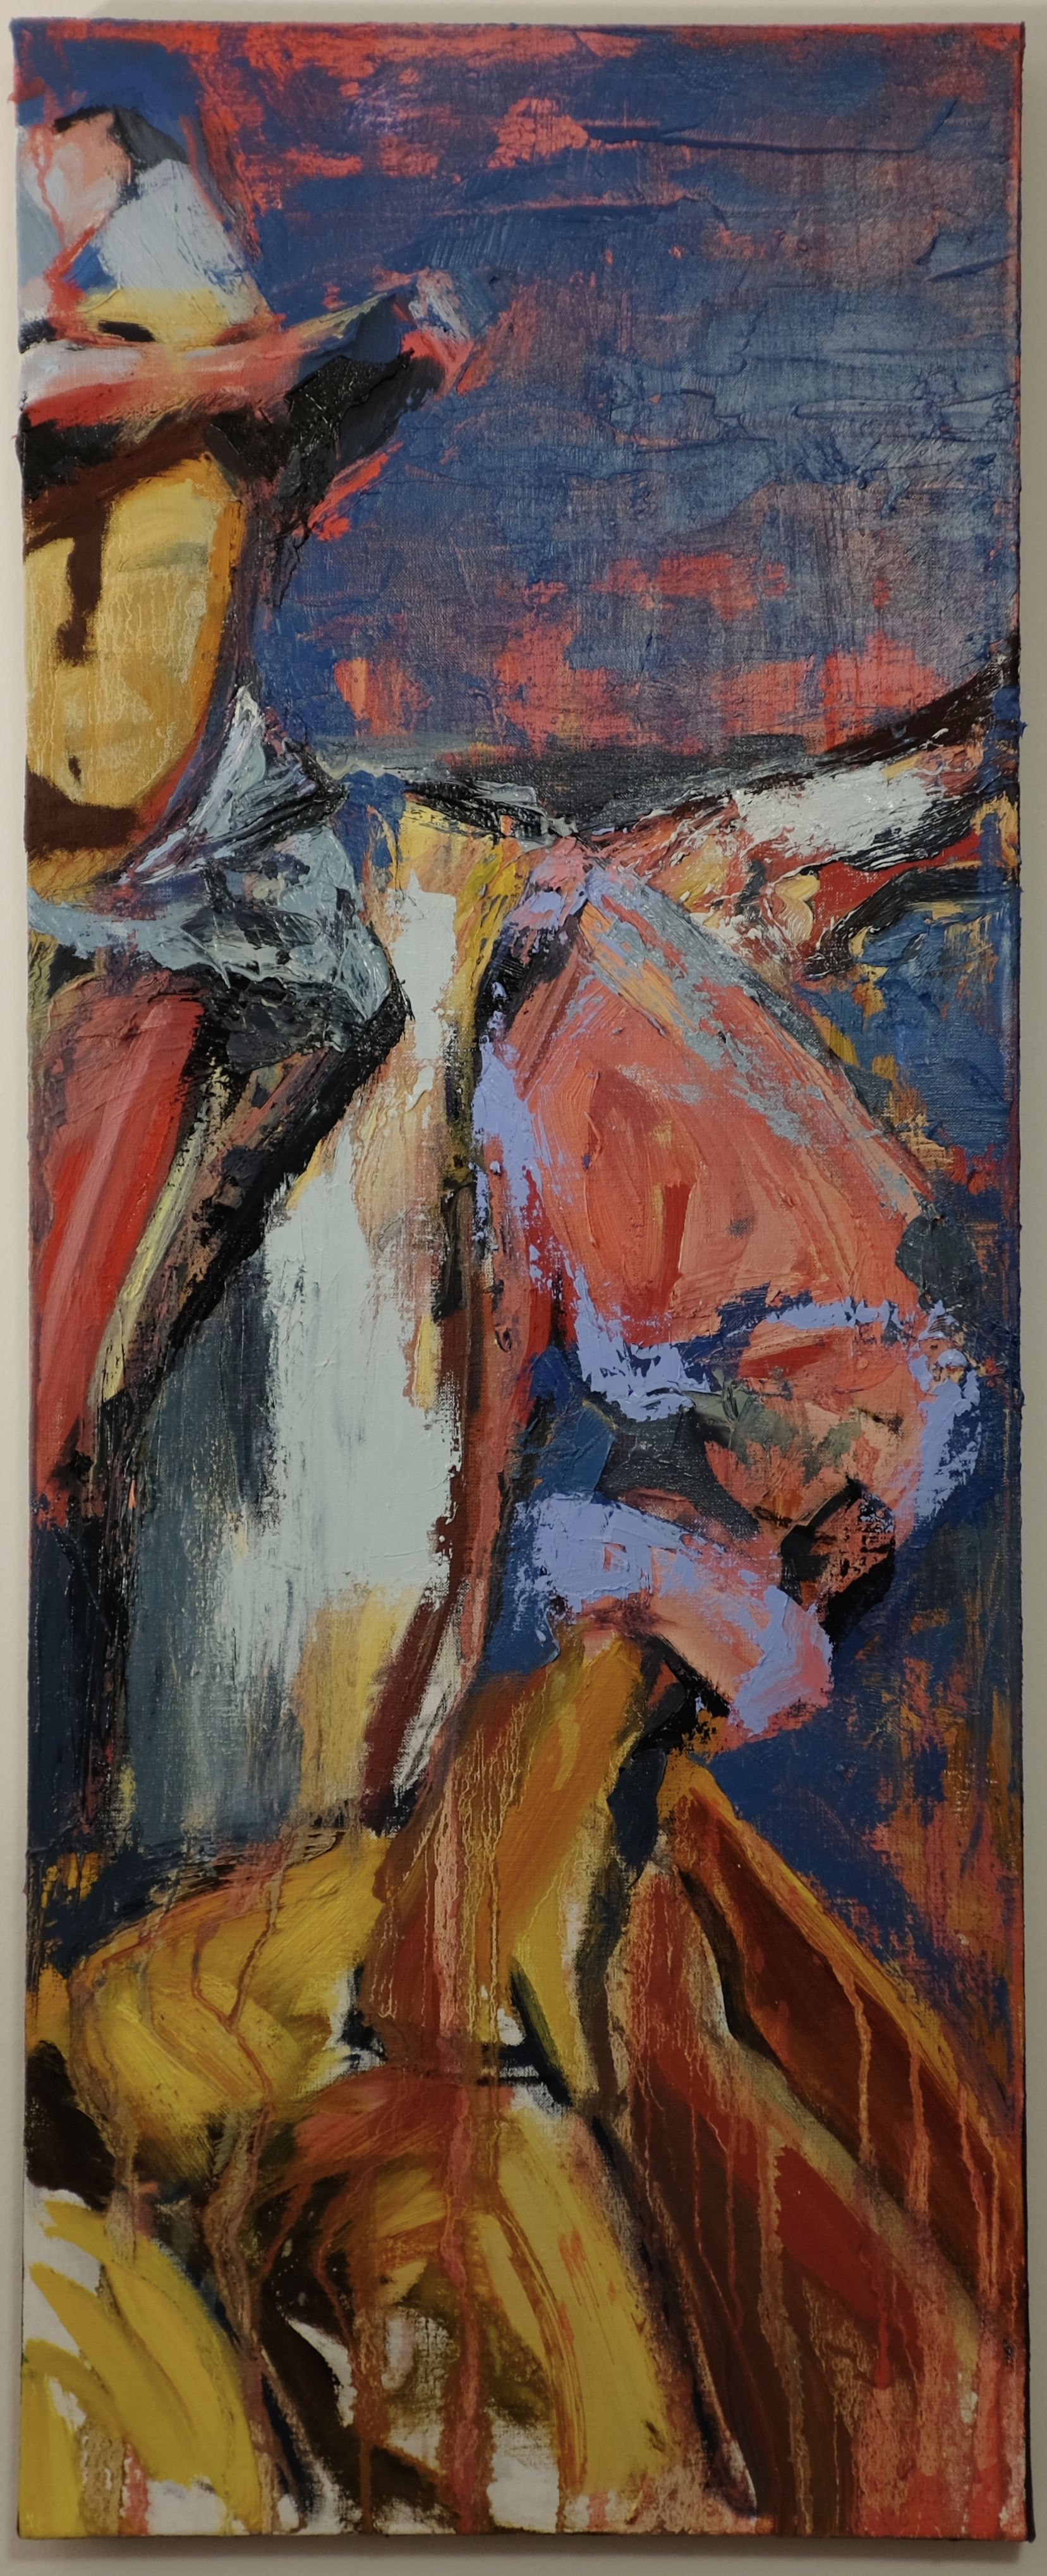 expressionism, cowboy, cowboy art, r.a.b., rachael bohlander, expressionist painting, abstractionism, abstractionist painting, portraiture